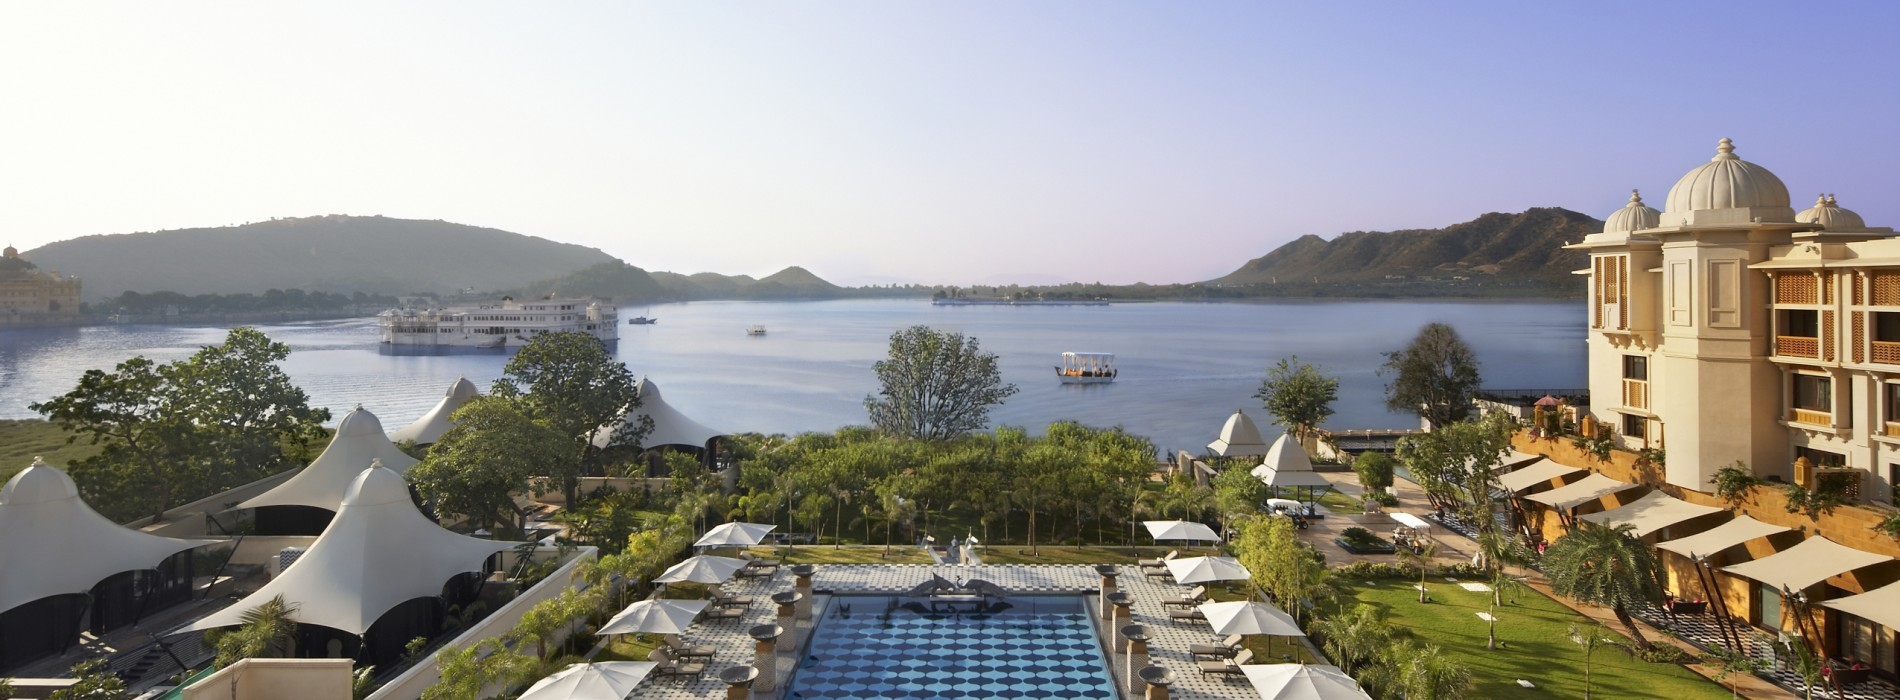 The Leela voted #7 top hotel brand at Travel + Leisure USA World's Best Awards 2018